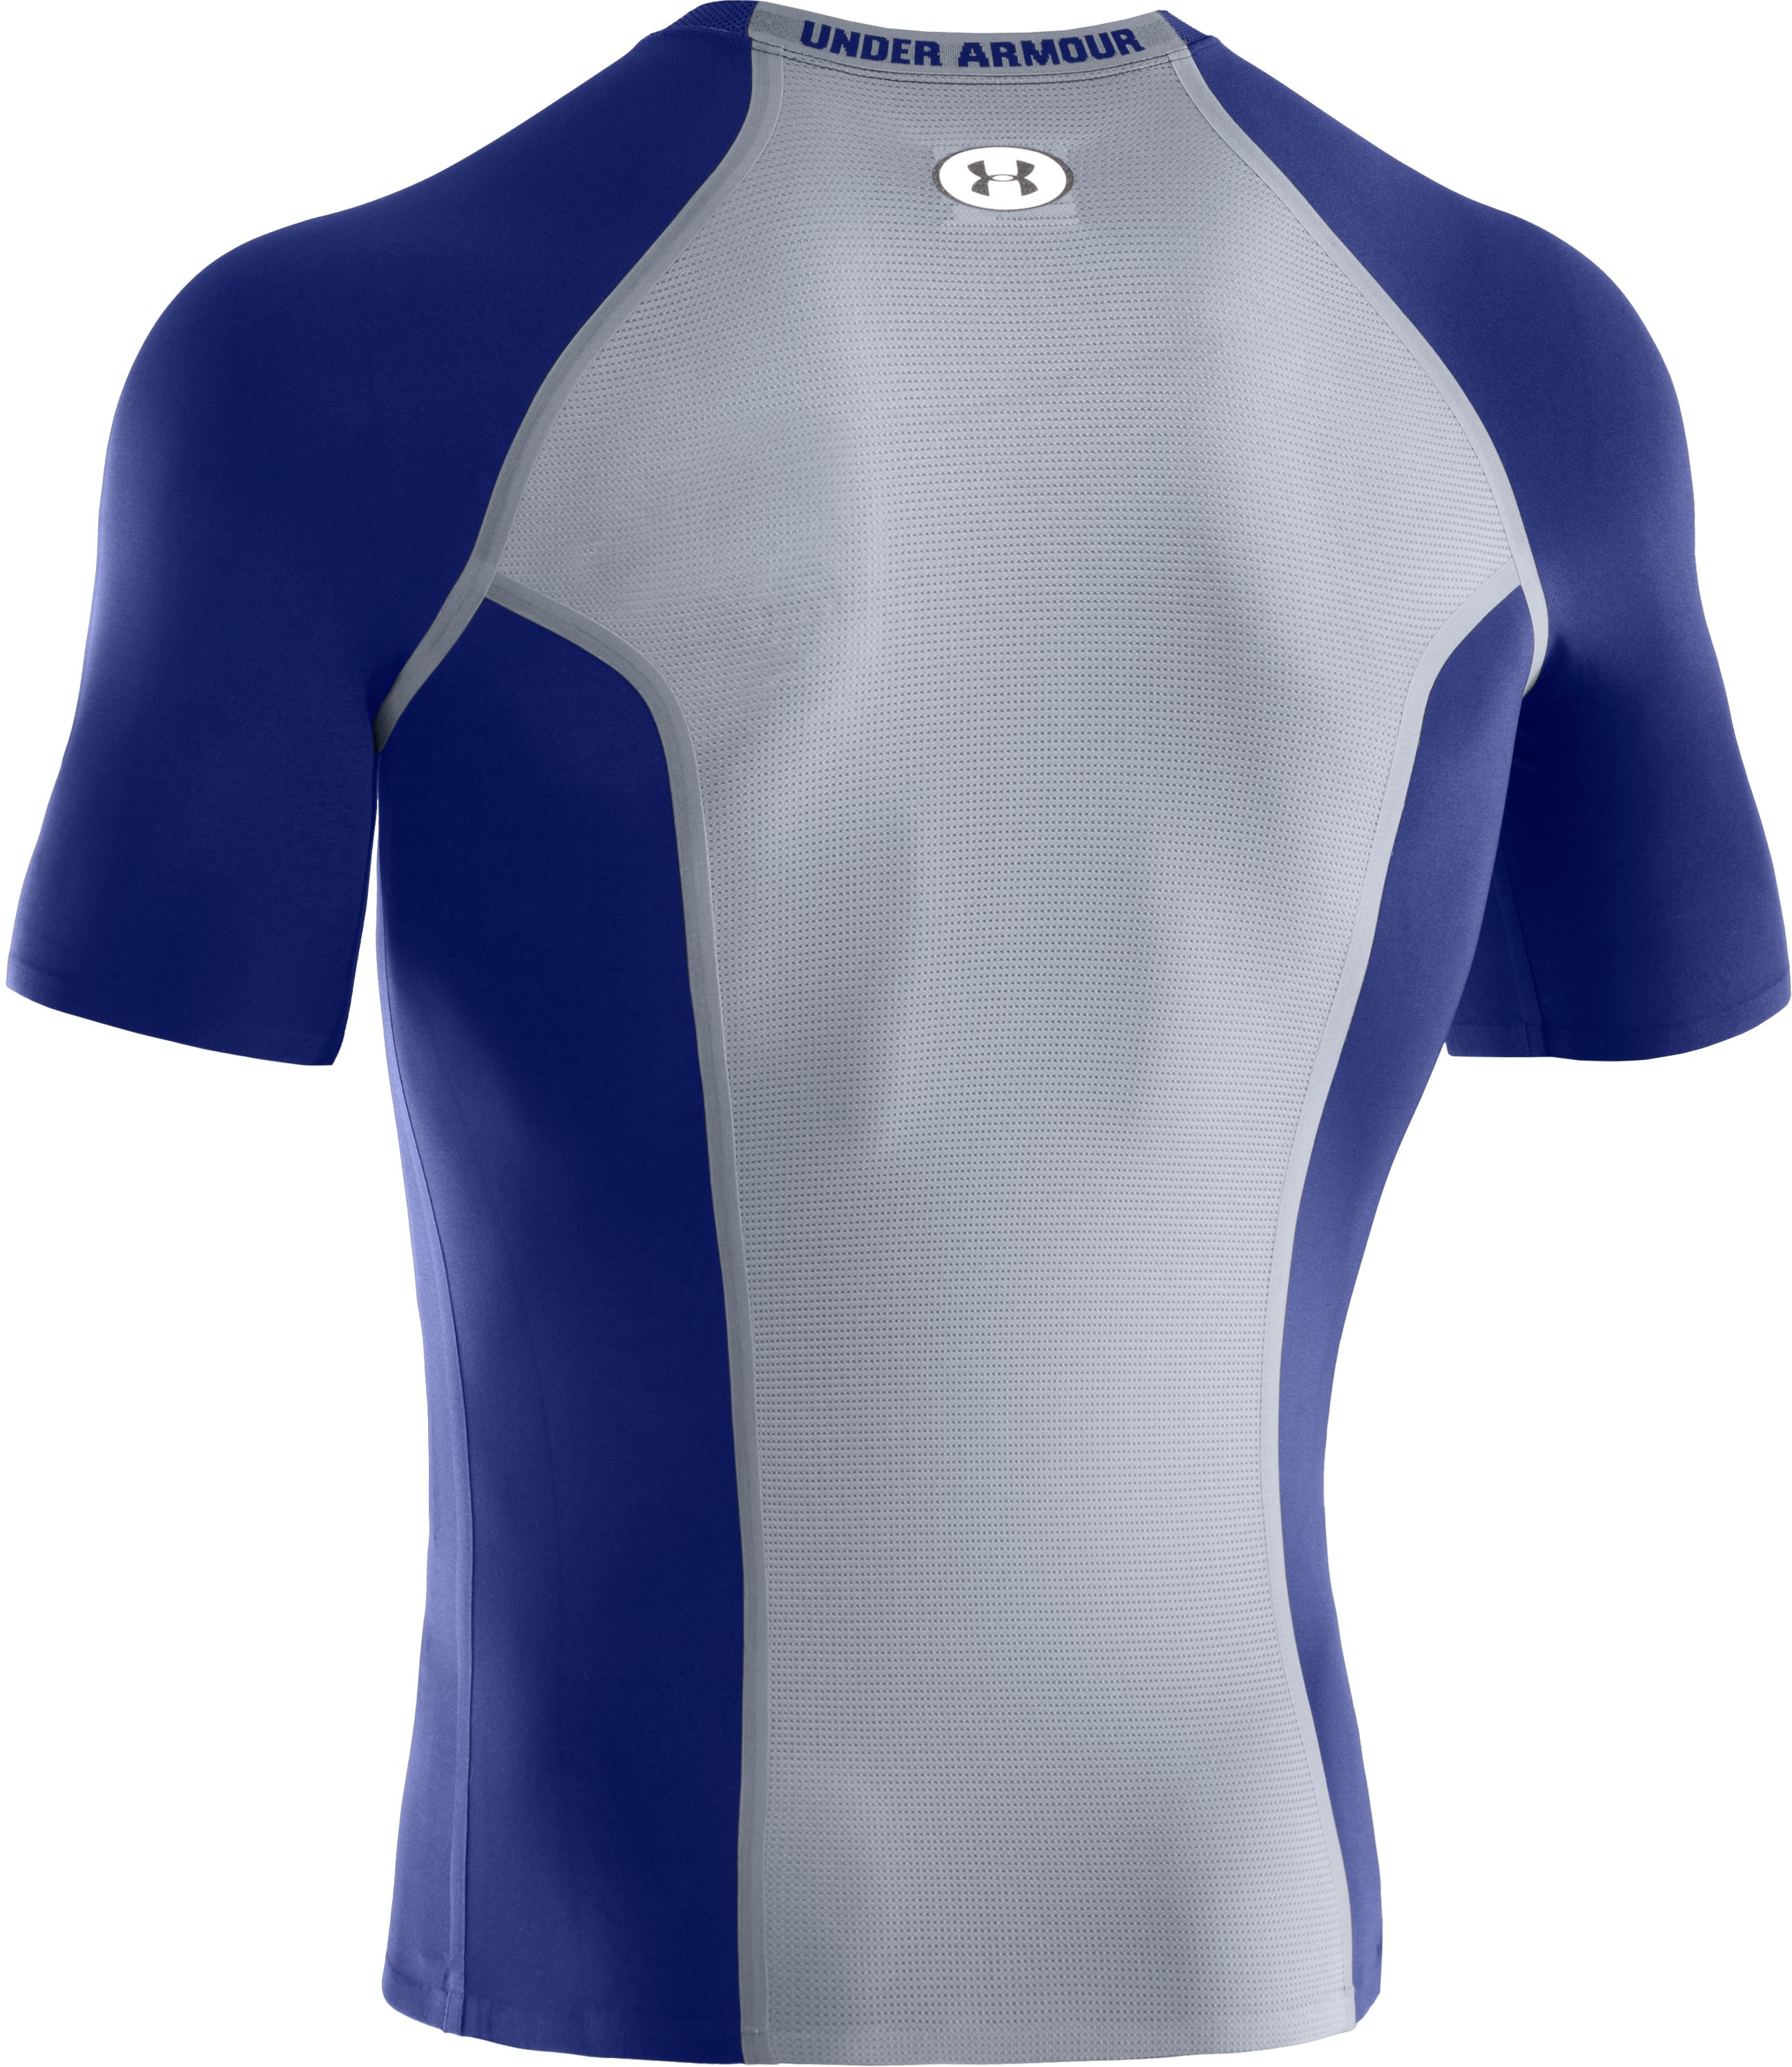 Men's HeatGear® Dynasty Vented Compression Short Sleeve, Royal